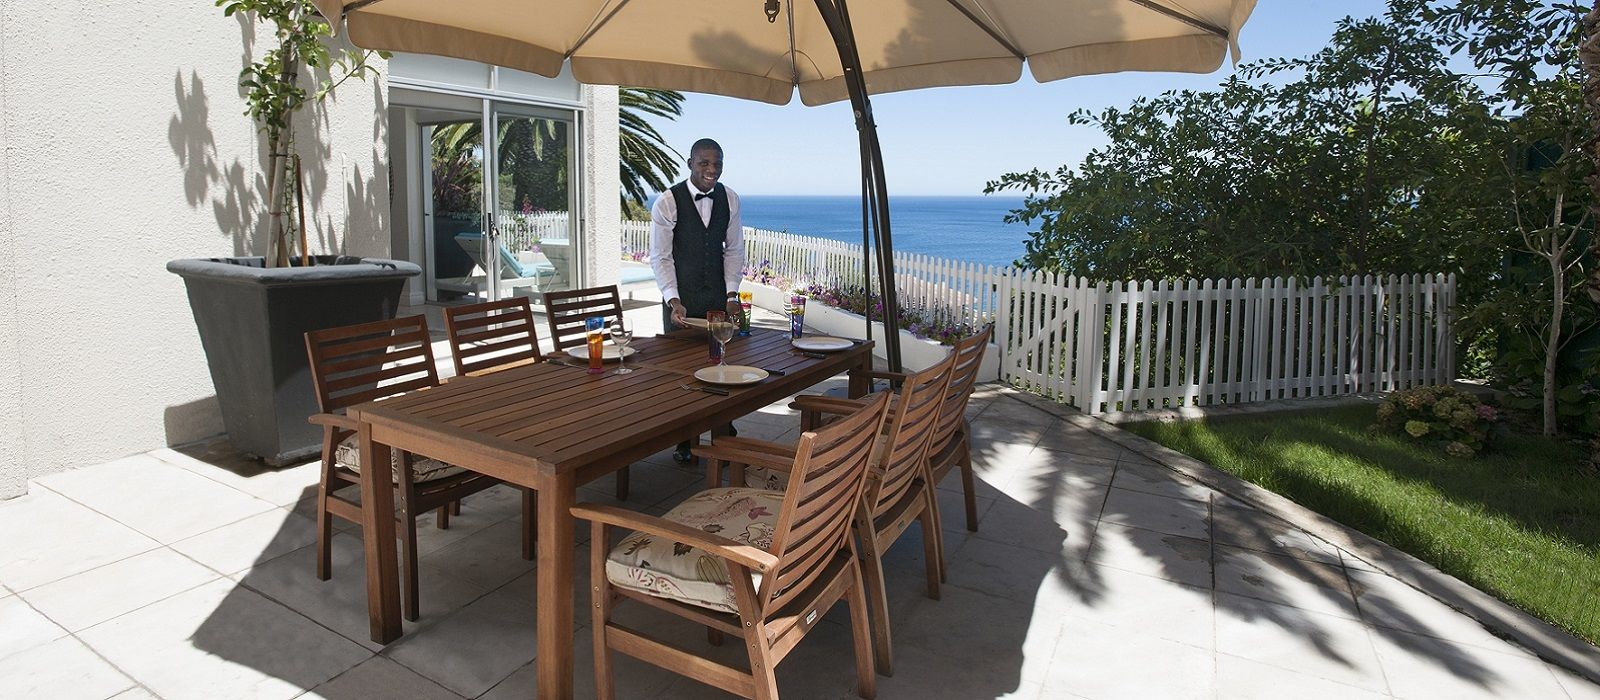 Hotel The Clarendon Bantry Bay South Africa